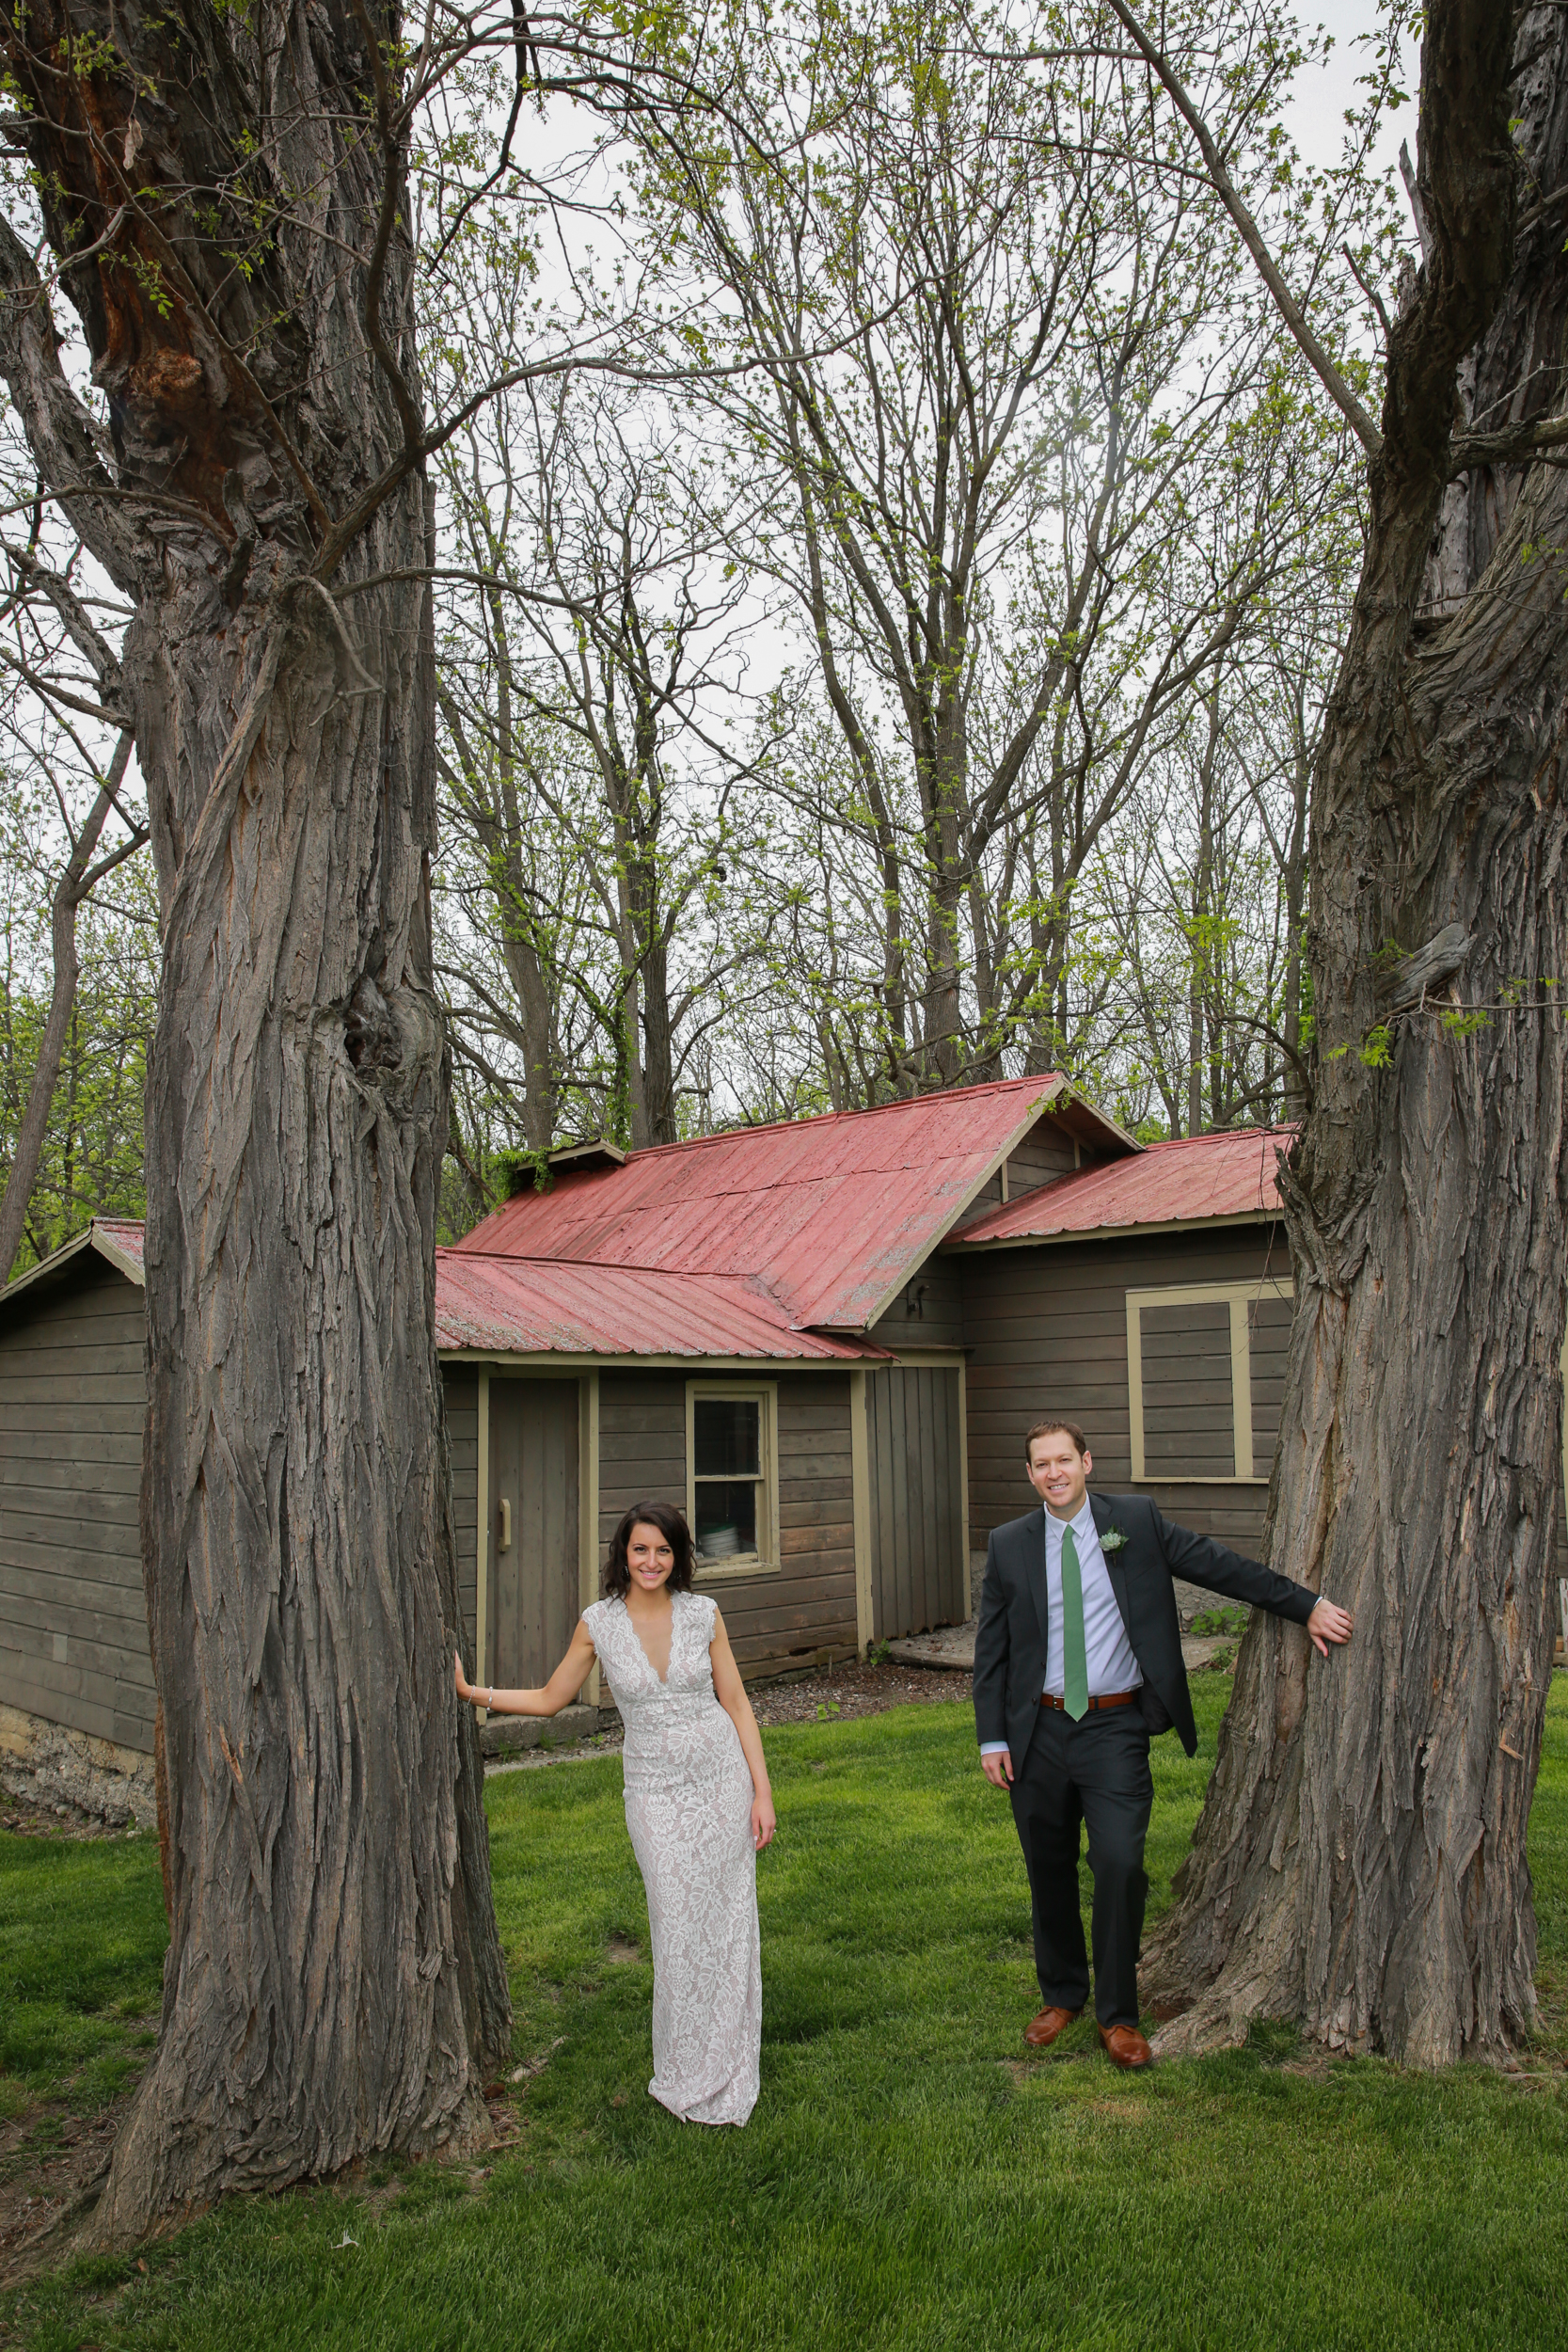 Pat's Barn Aperture Photography wedding photo